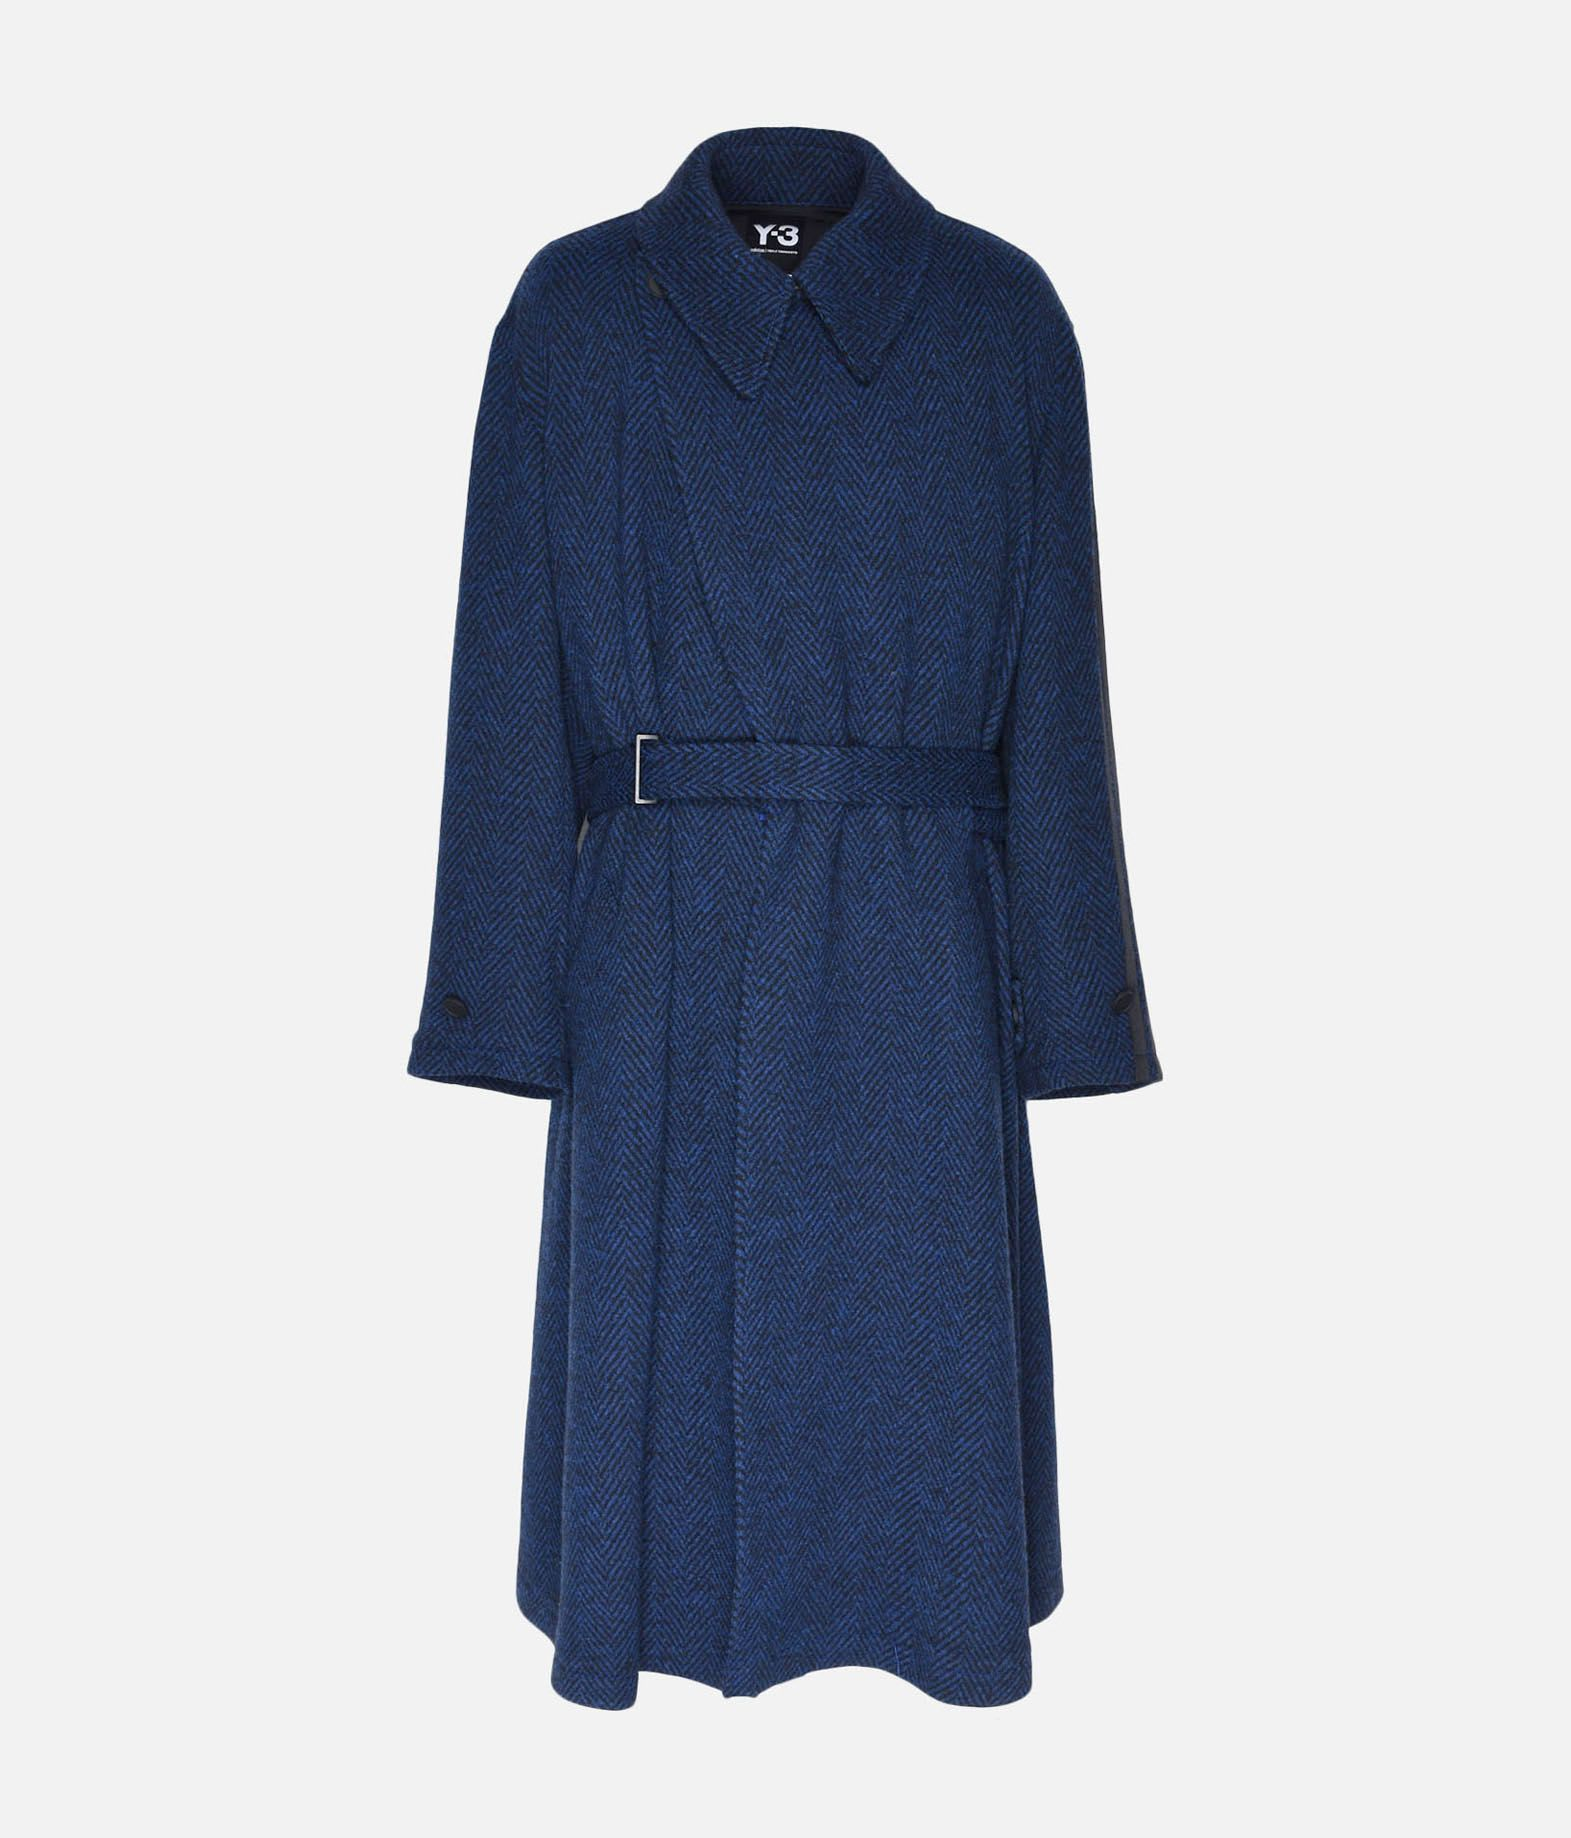 Y-3 Y-3 Tailored Wool Coat Coat Man f